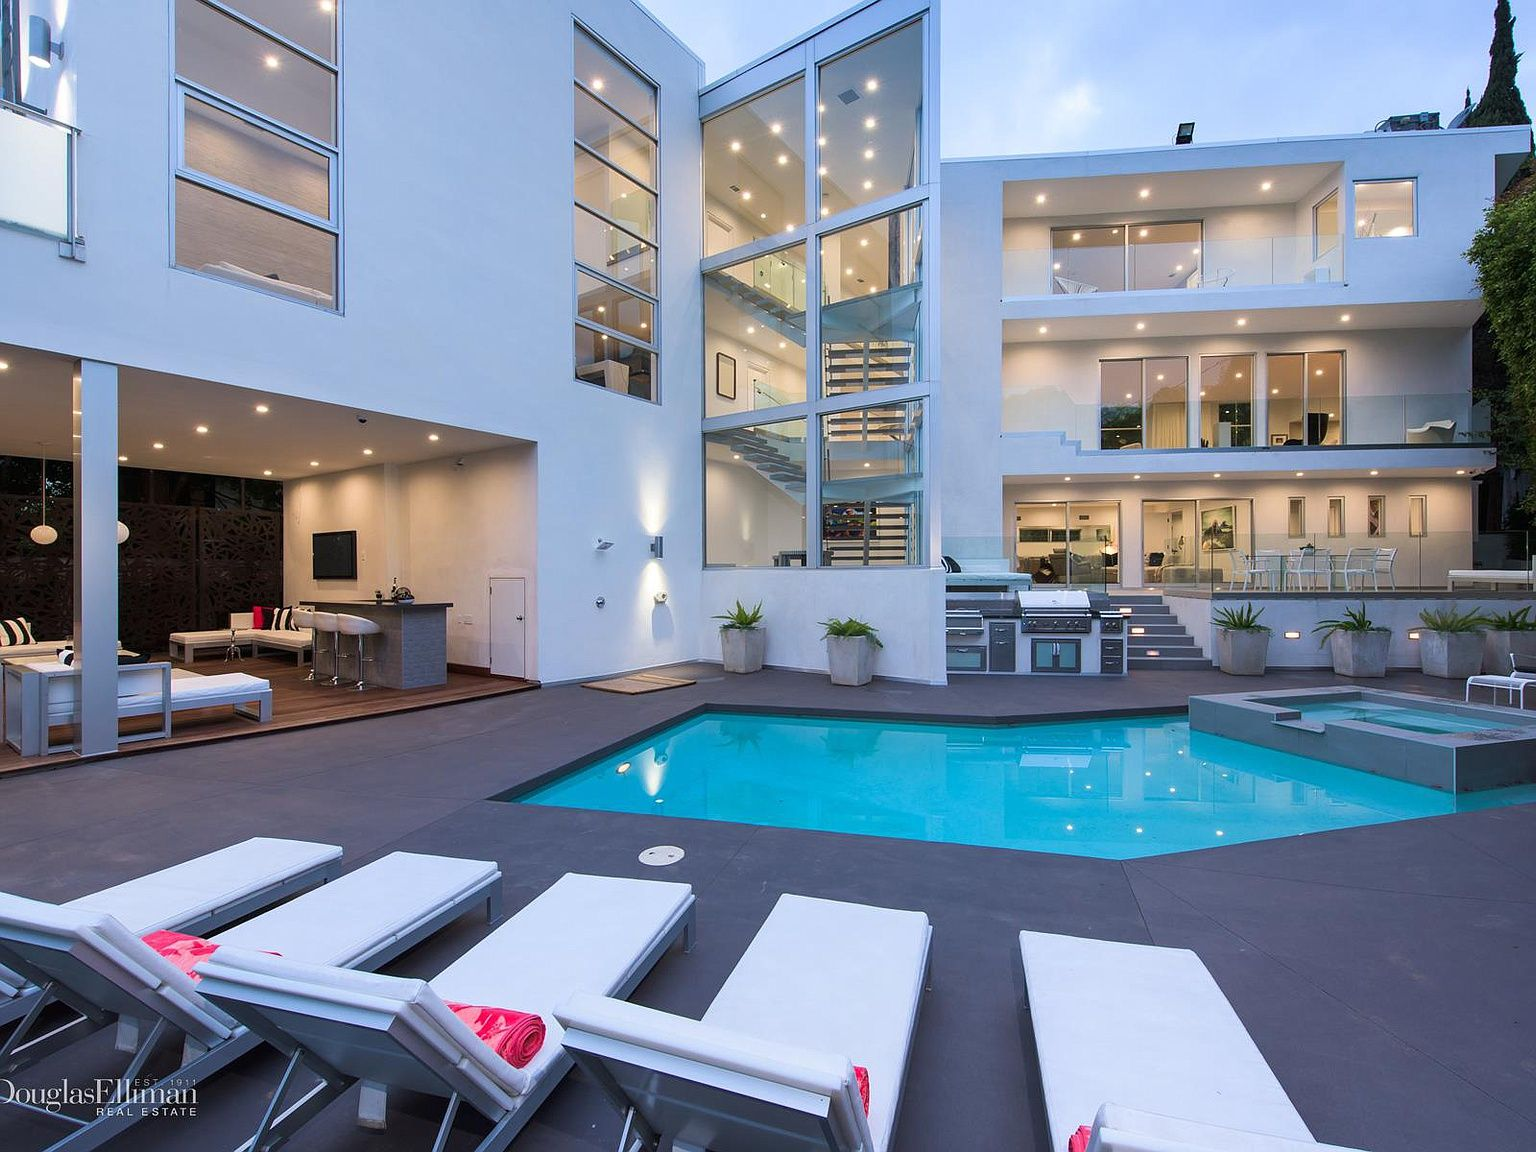 1162 Sunset Hills Rd West Hollywood Ca 90069 Mls 19450666 Zillow Los Angeles Homes Modern House Sunset Hills